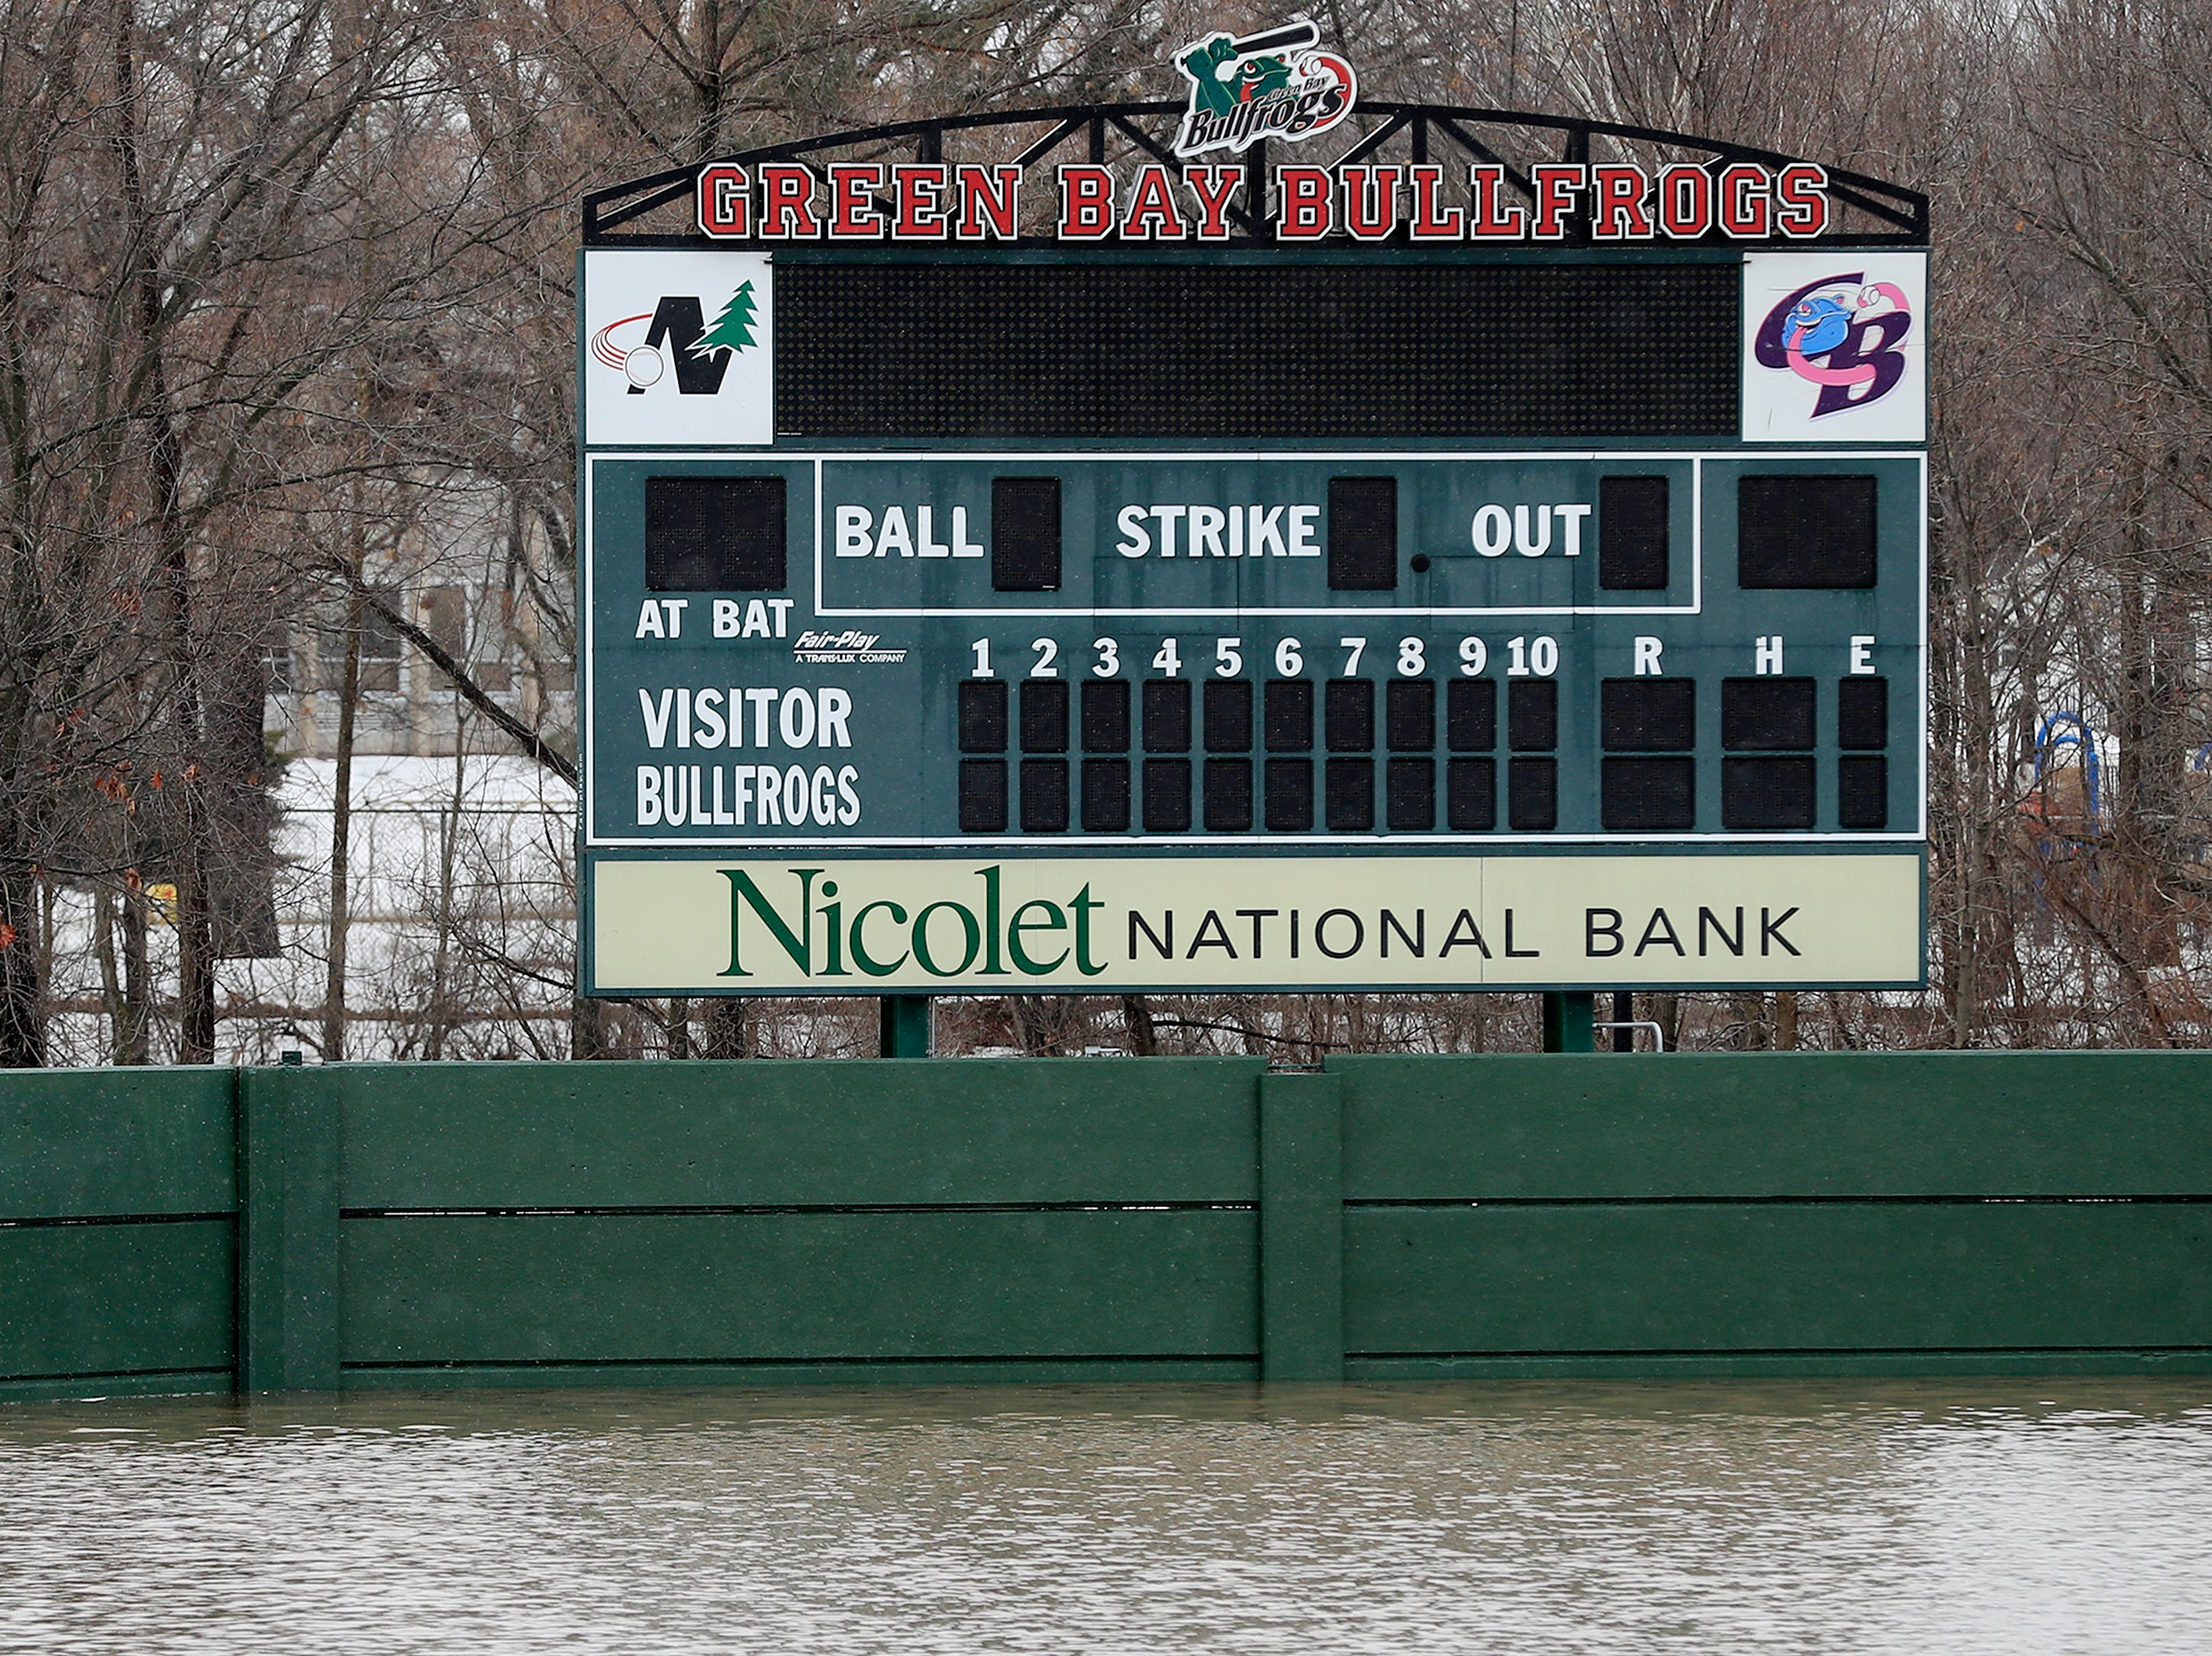 The baseball stadium at Joannes Park is submerged by floodwaters from the East river on Friday, March 15, 2019 in Green Bay, Wis.